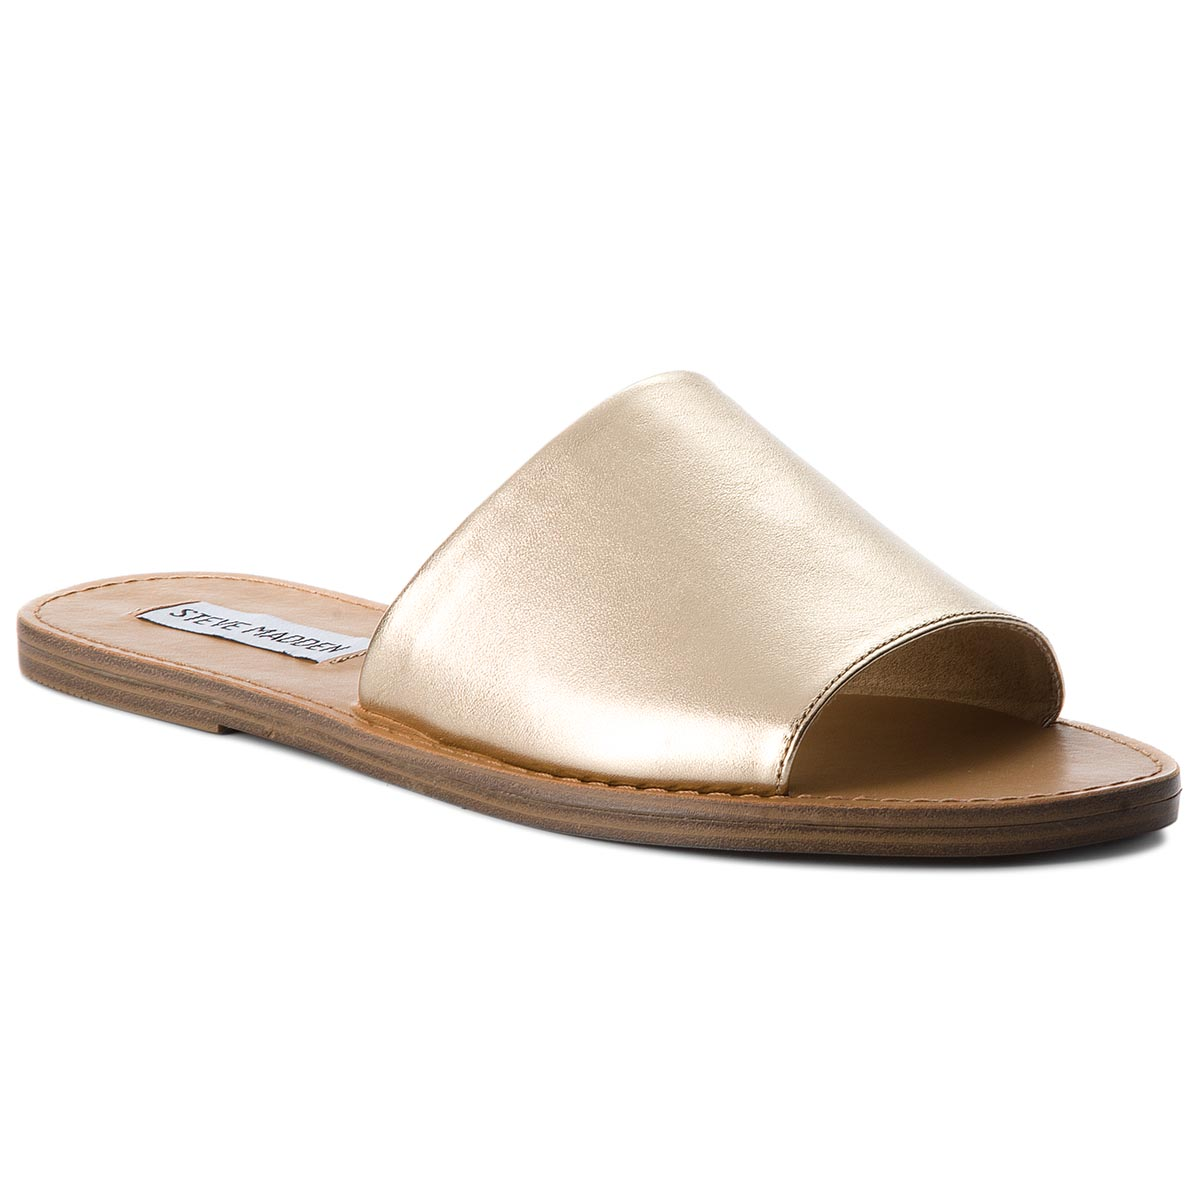 Klapki STEVE MADDEN - Grace Slipper 91000959-10001-15001 Gold